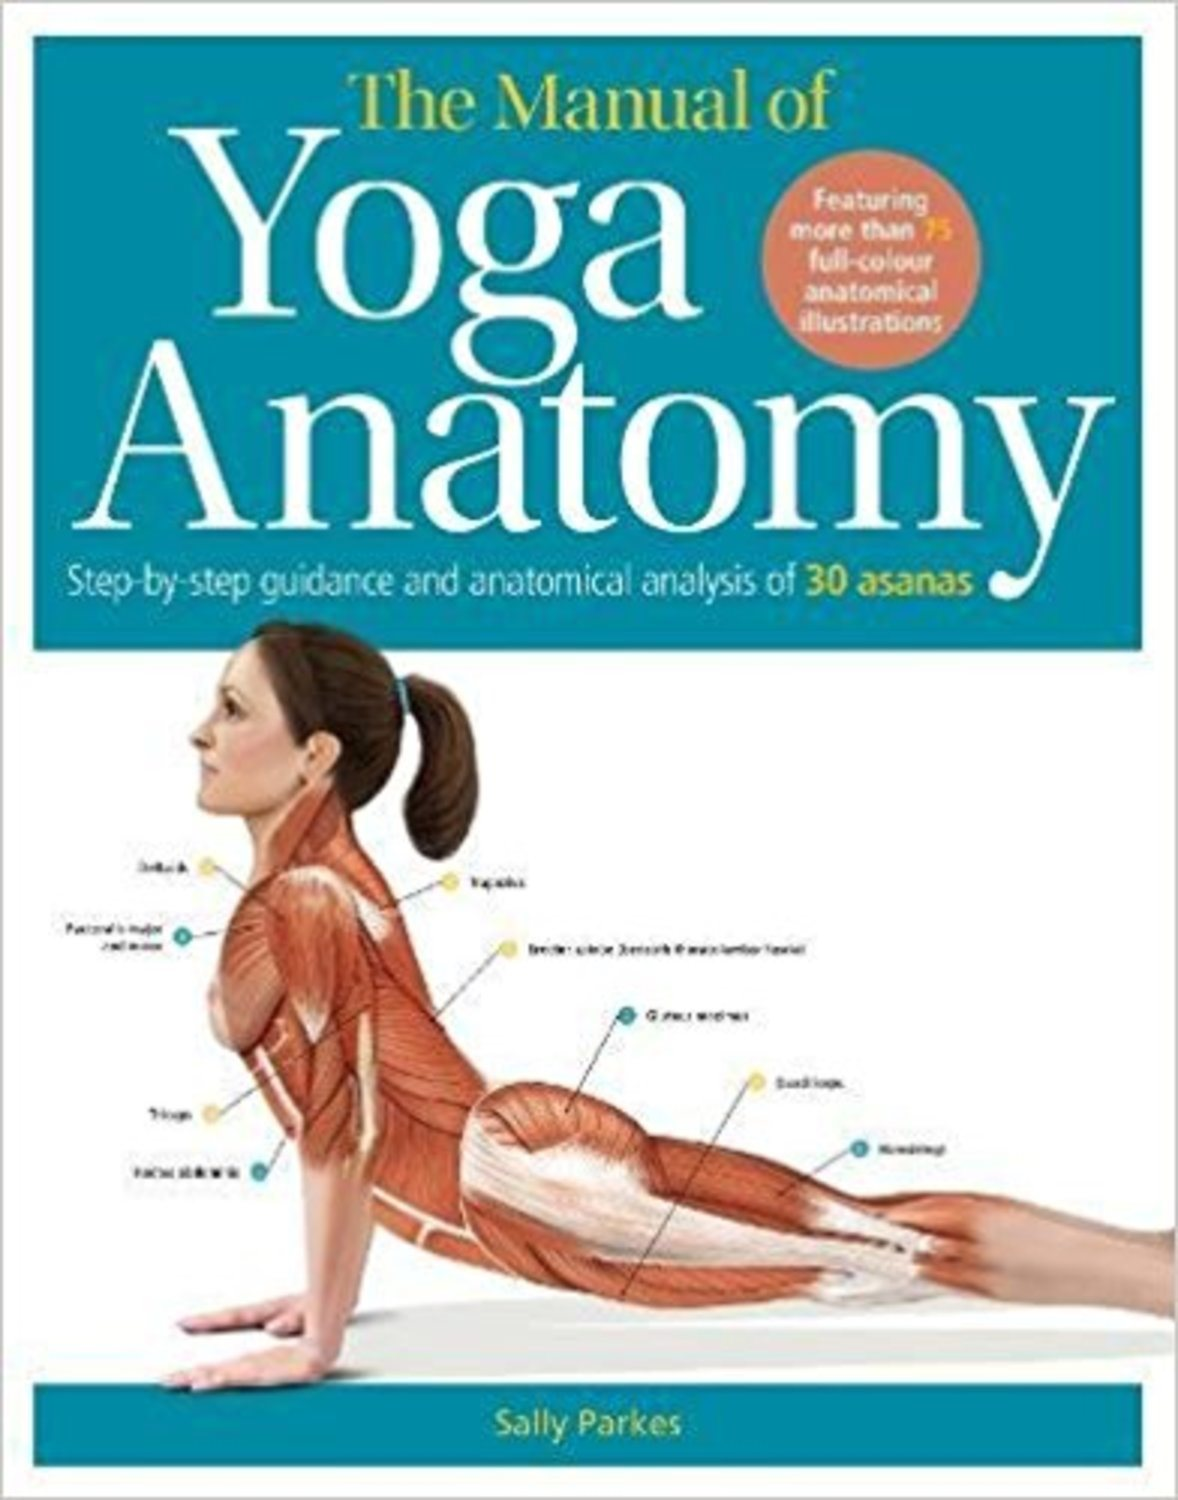 Manual of yoga anatomy 9780857625182